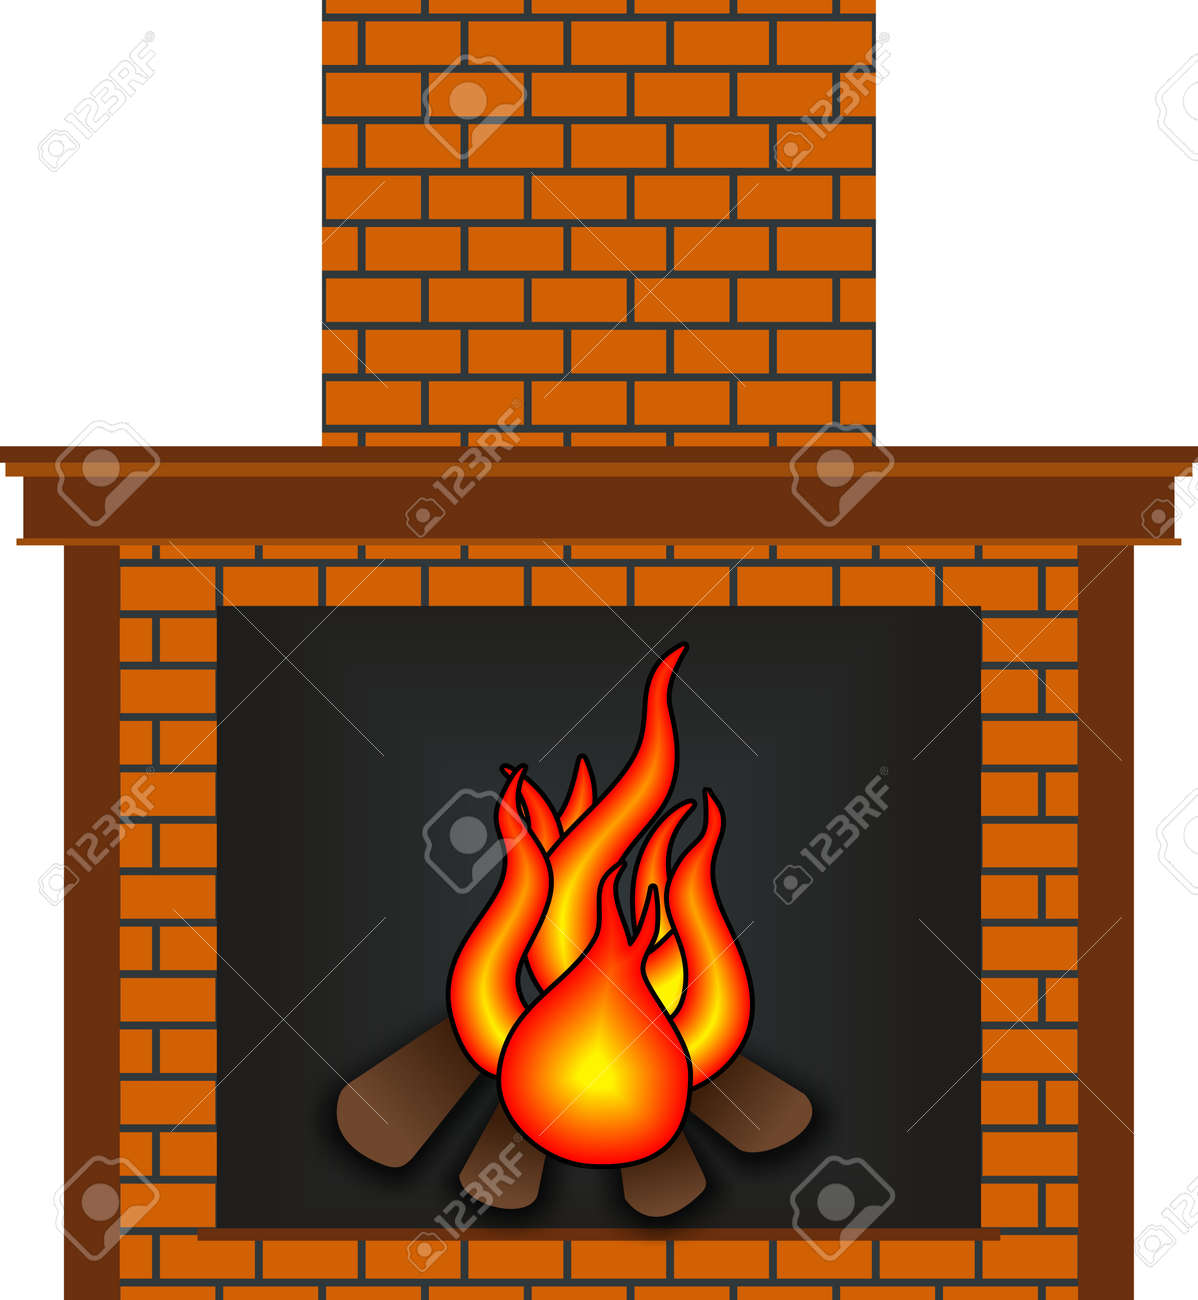 fireplace graphic home decorating interior design bath